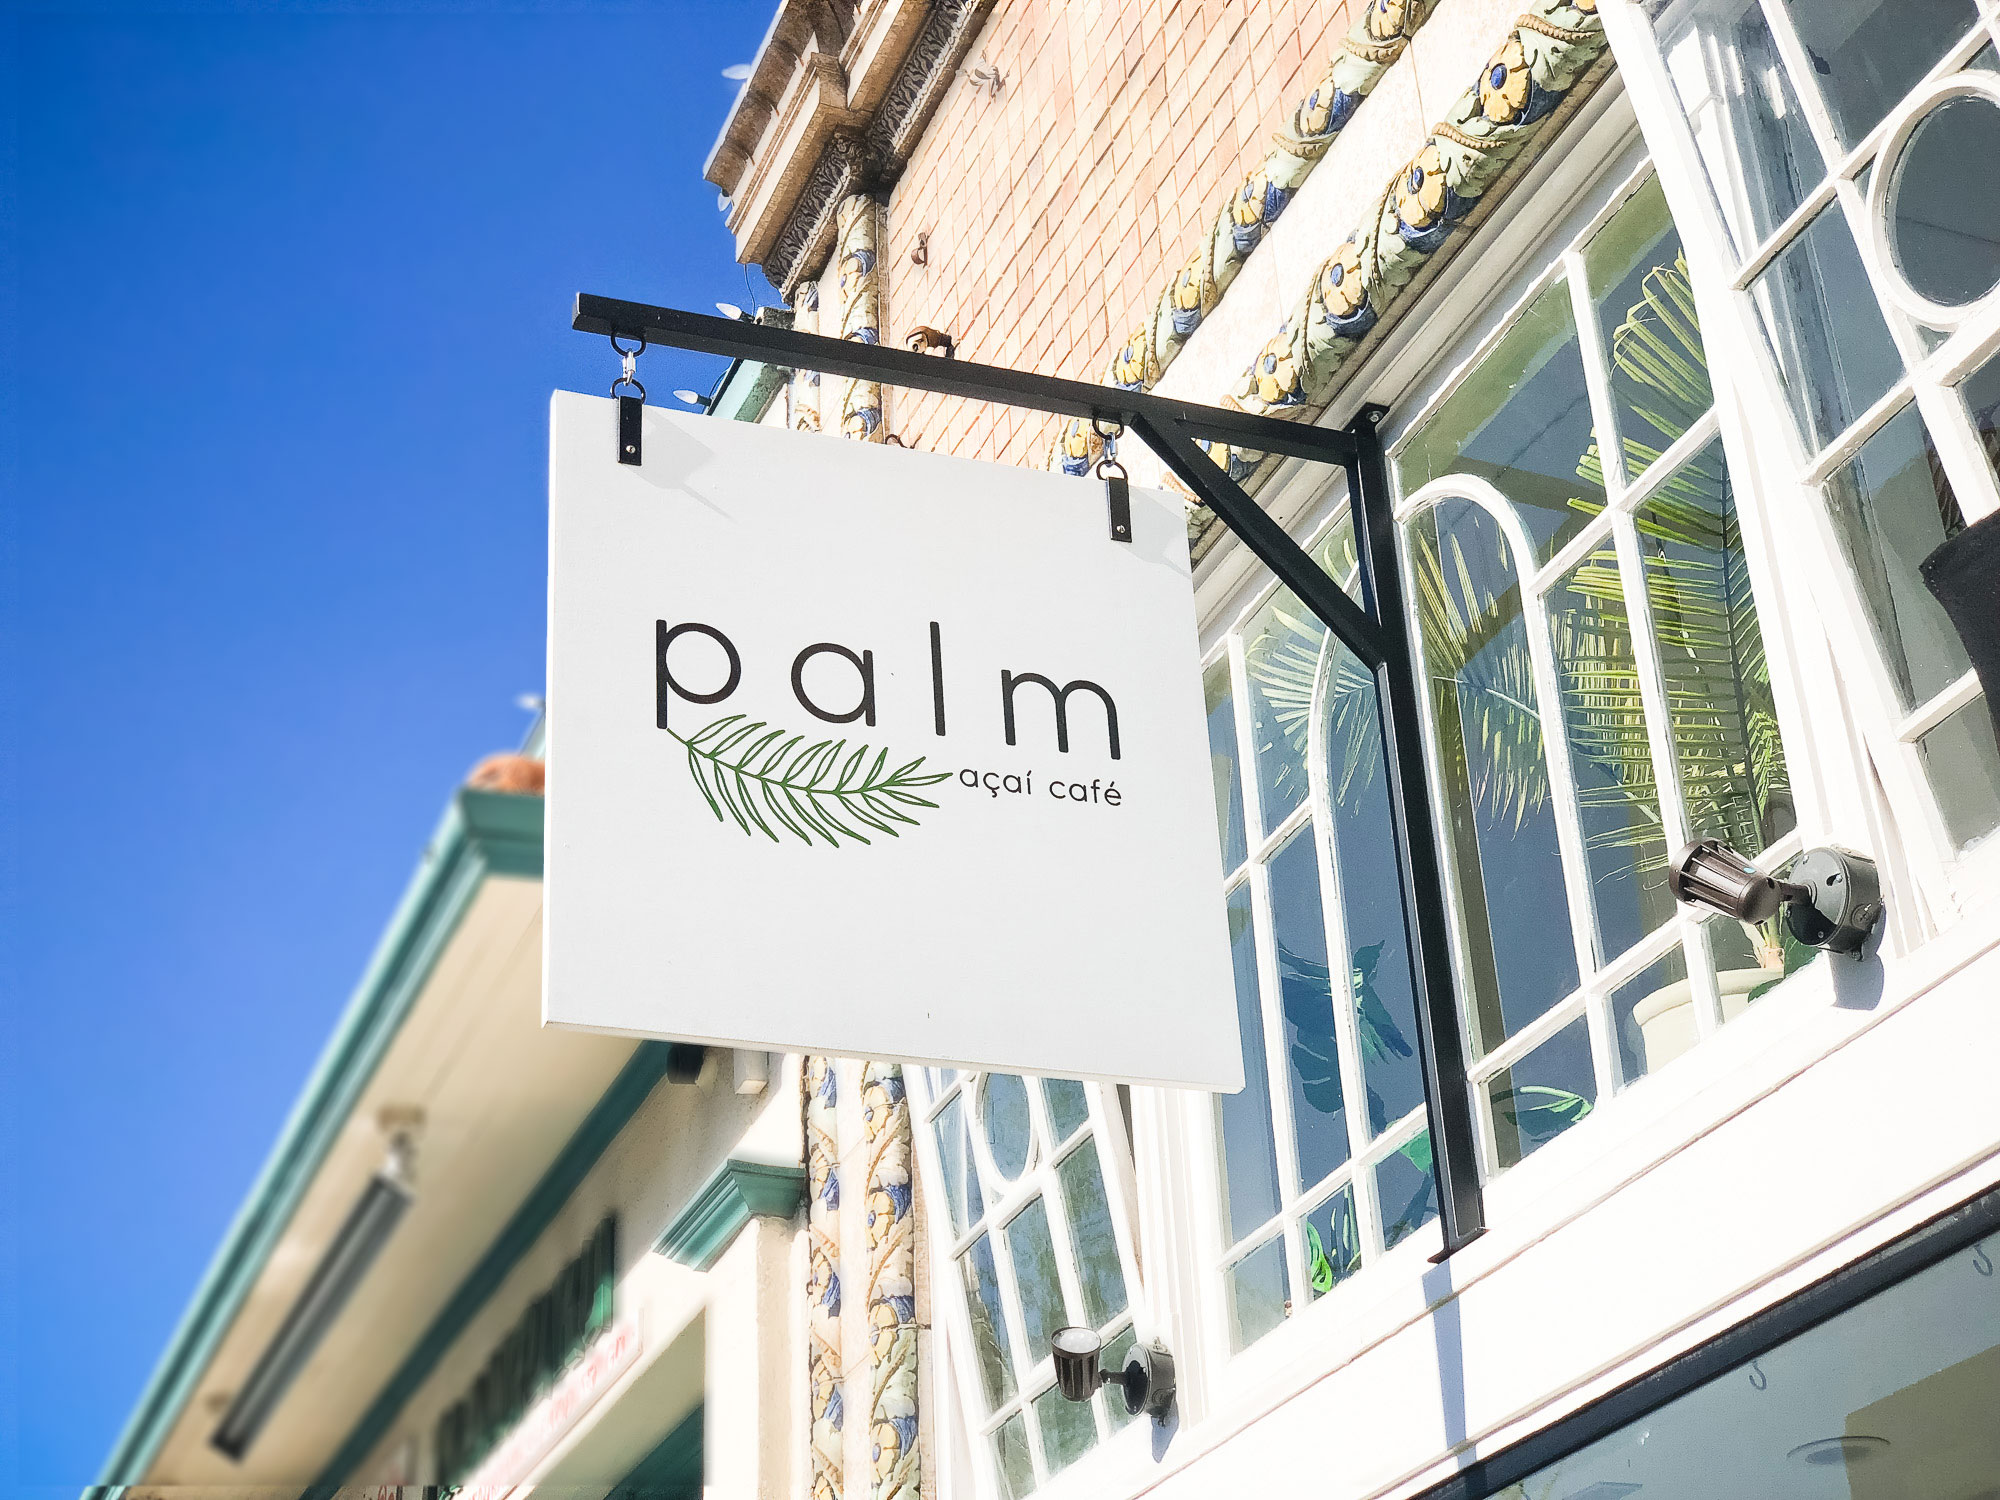 Simple white blade sign for palm acai cafe in Oakland, CA